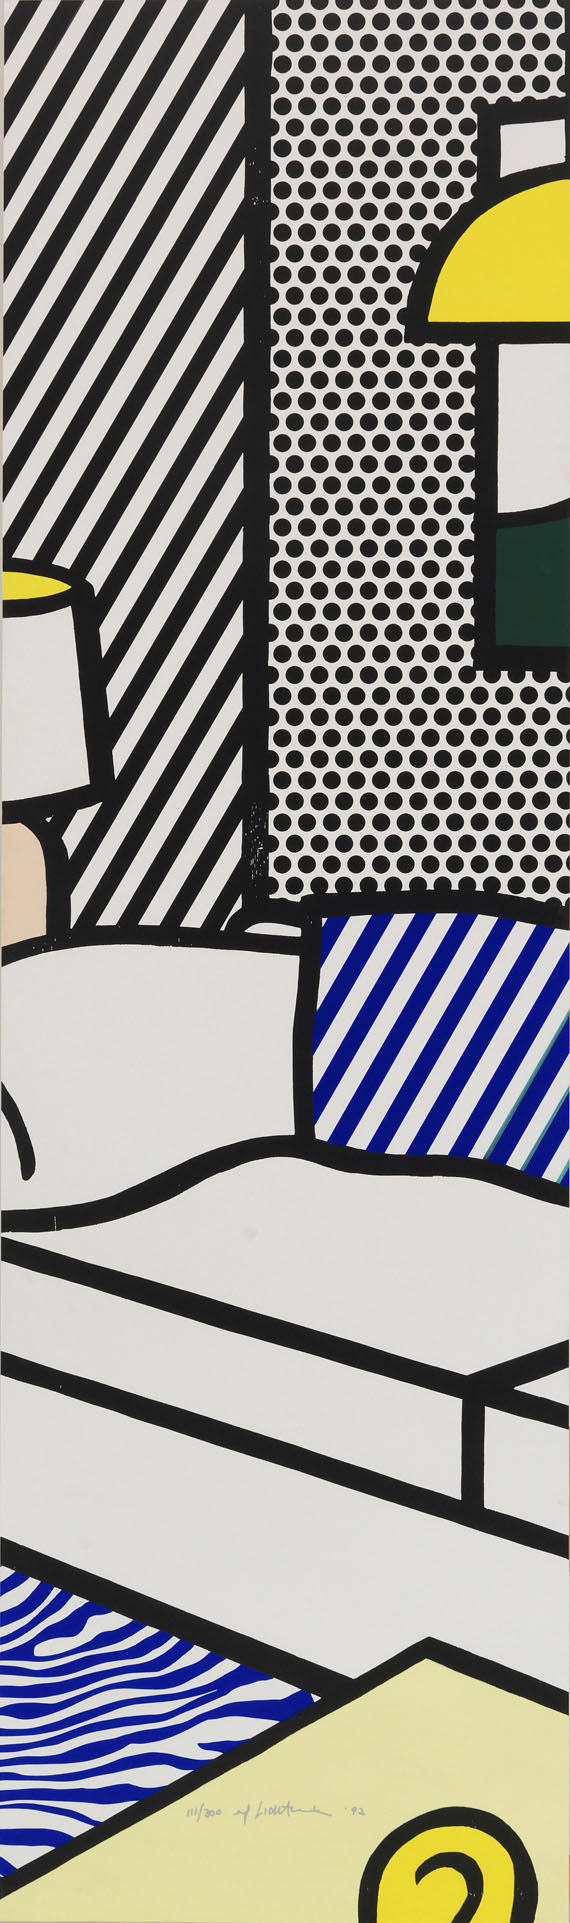 Roy Lichtenstein - Wallpaper with Blue Floor Interior -